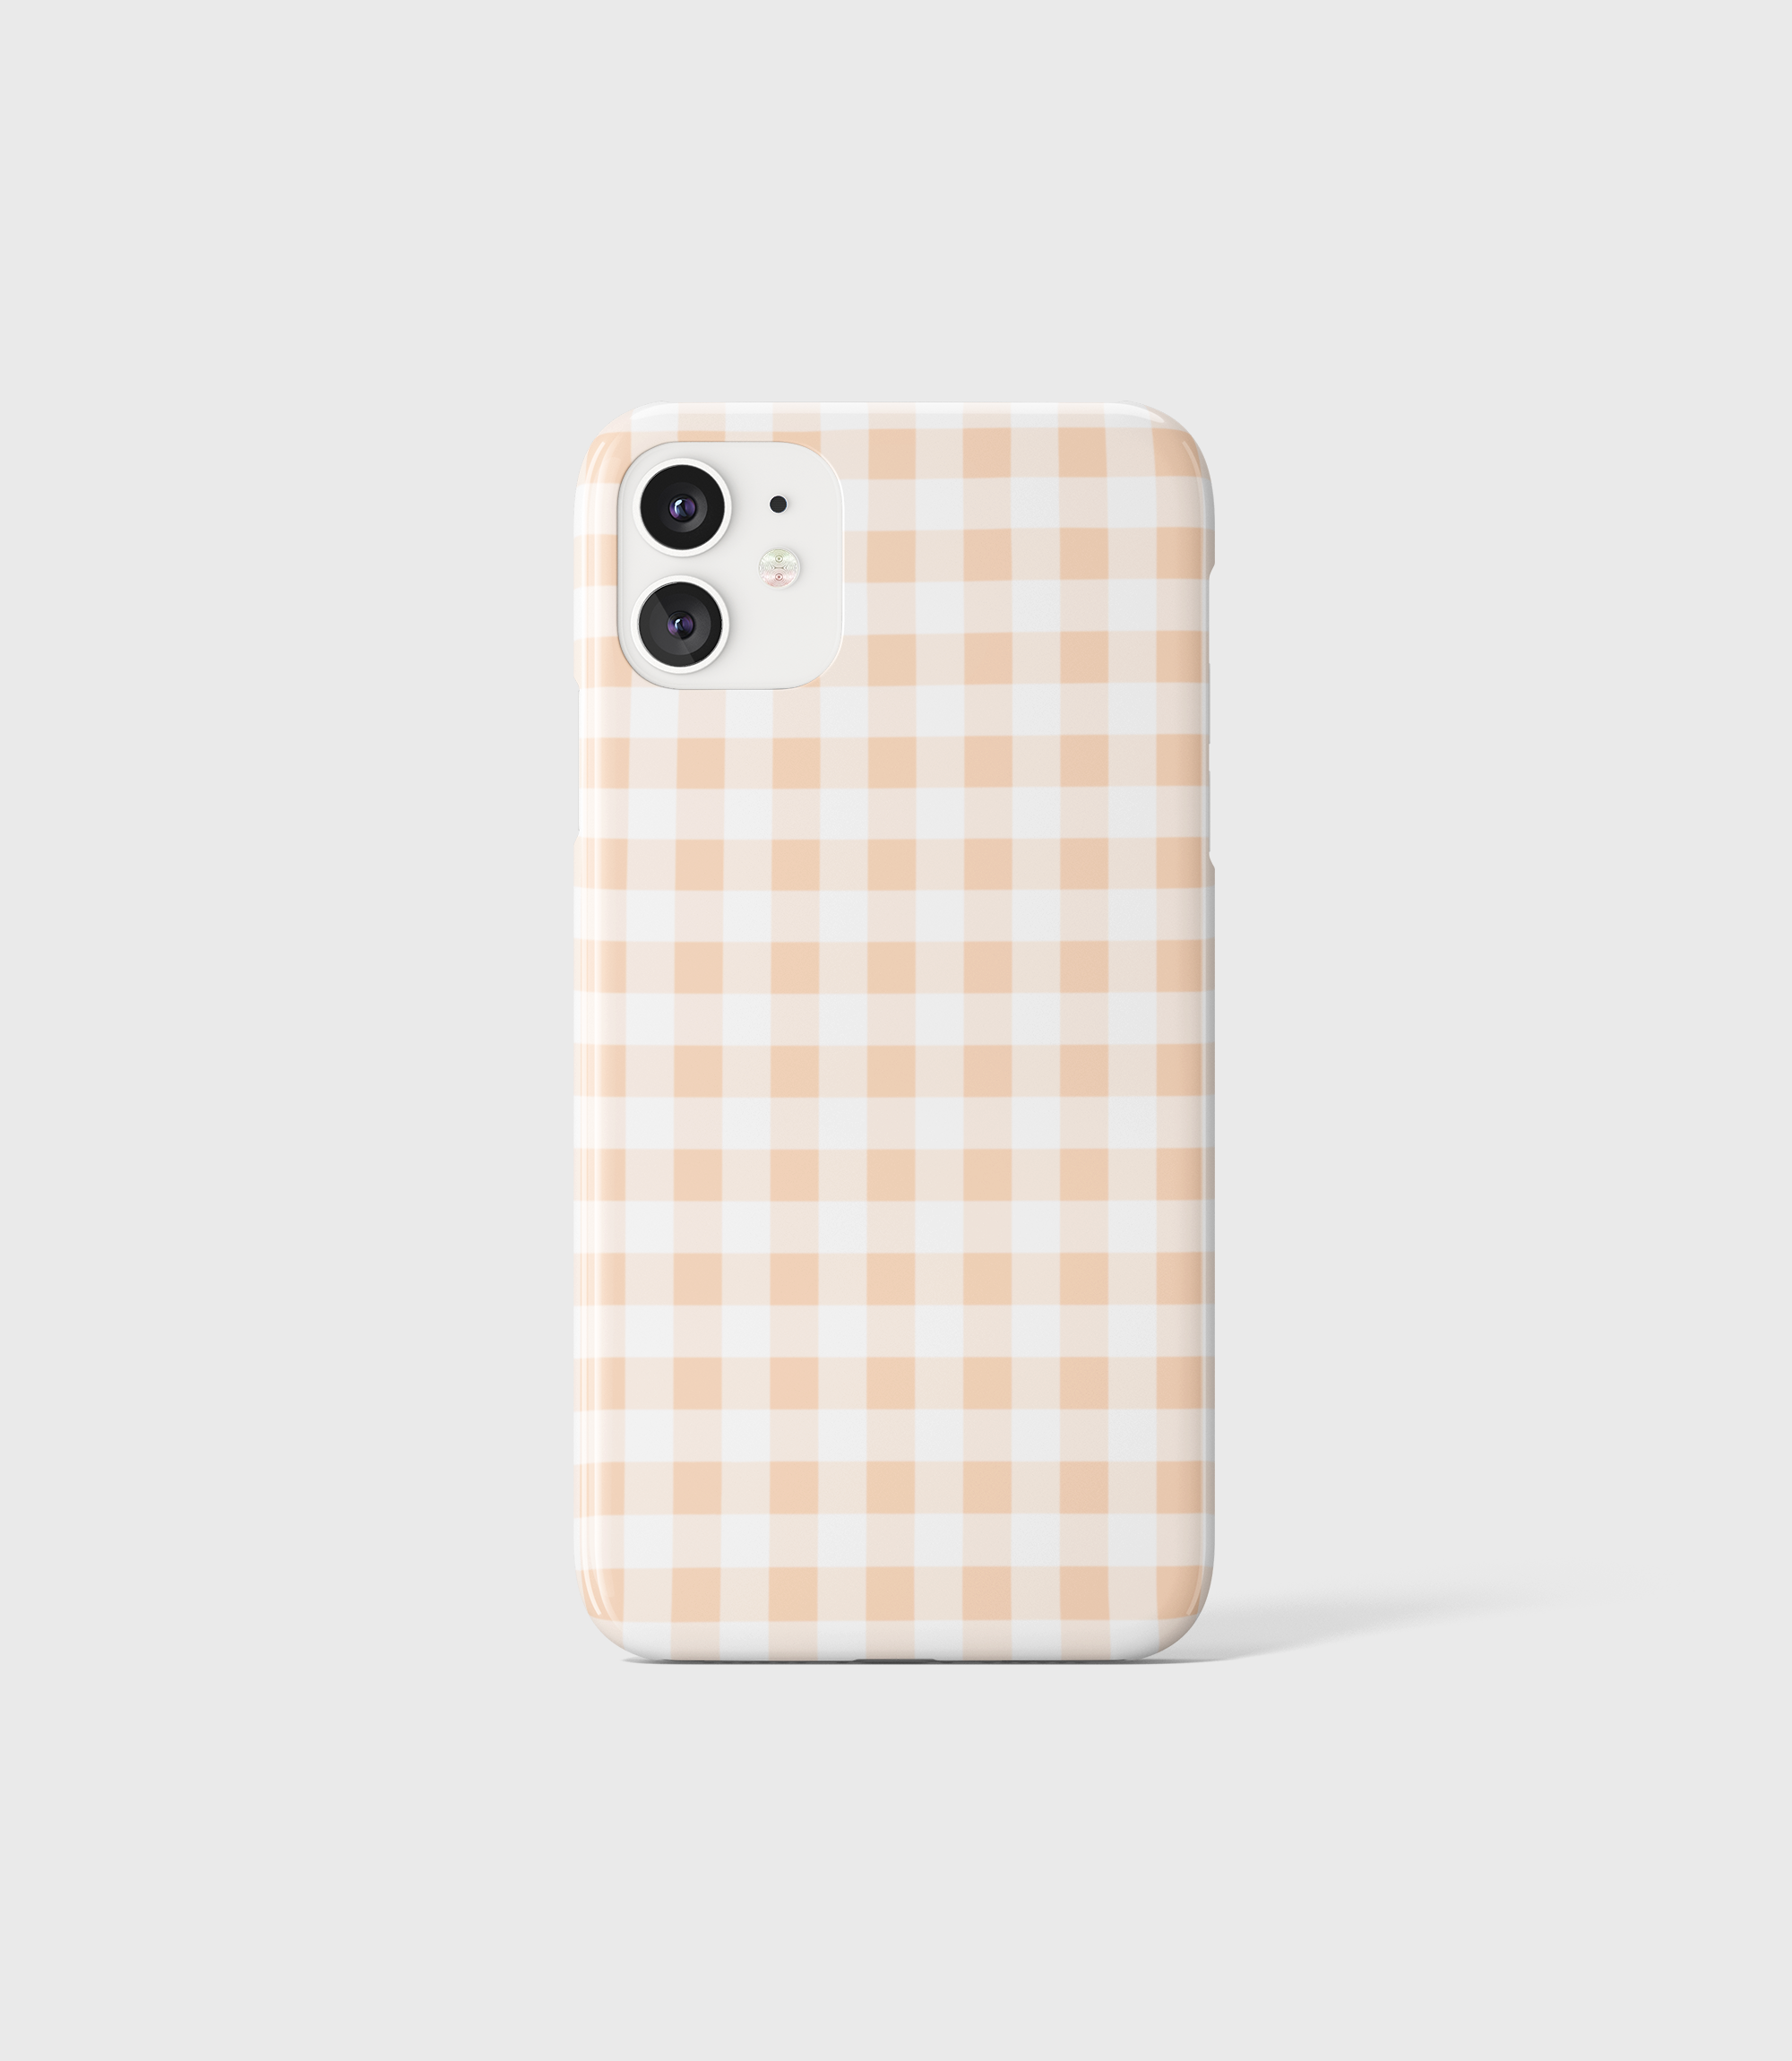 Peach Gingham Phone Case - iPhone